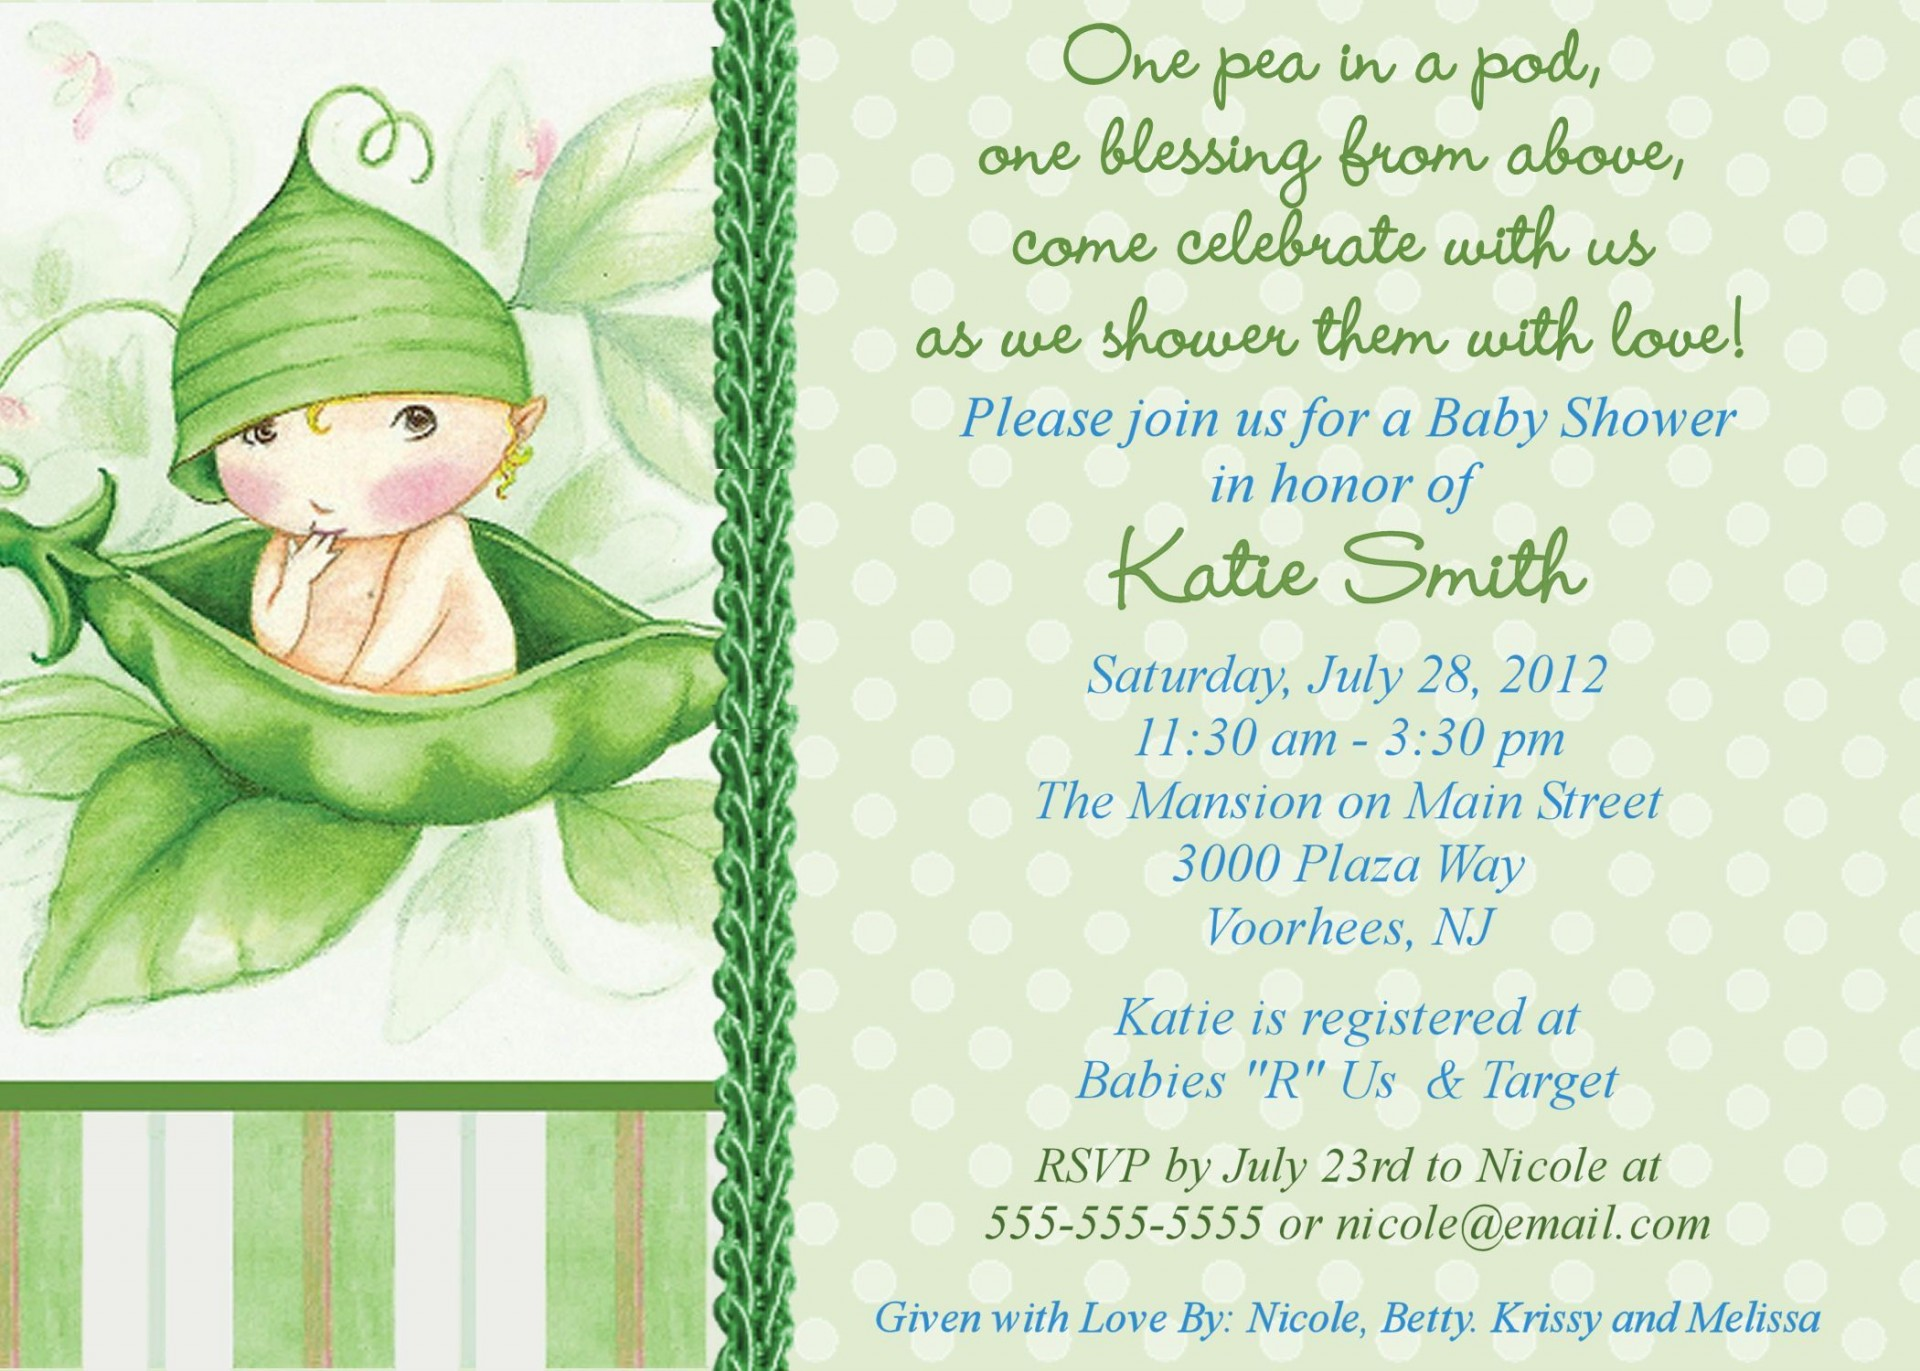 000 Exceptional Baby Shower Invitation Wording Example High Def  Examples Invite Coed Idea For Boy1920